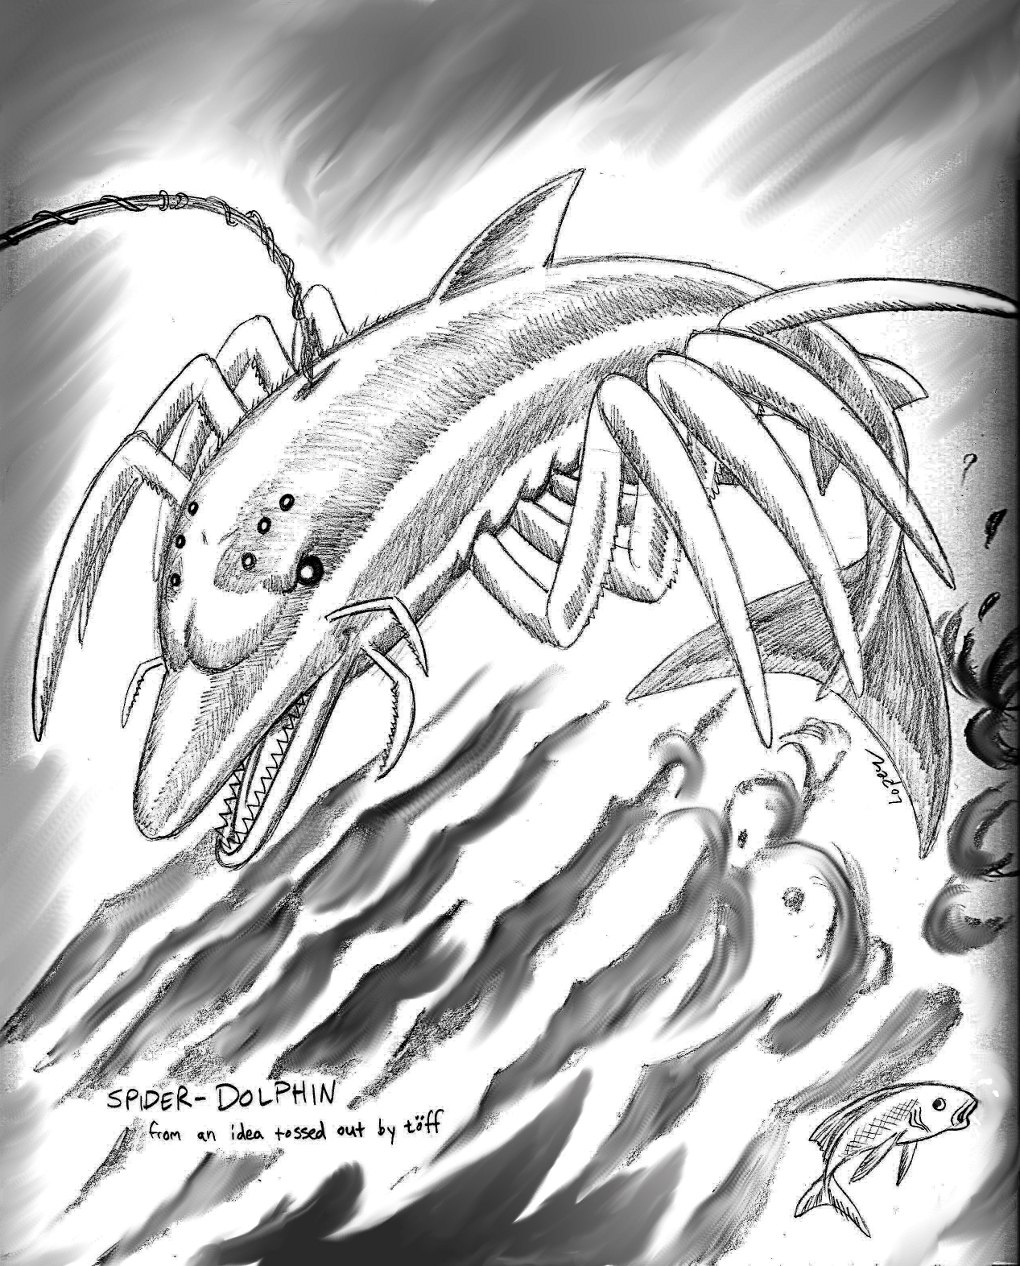 Beware the Terror of the Spider-Dolphin!